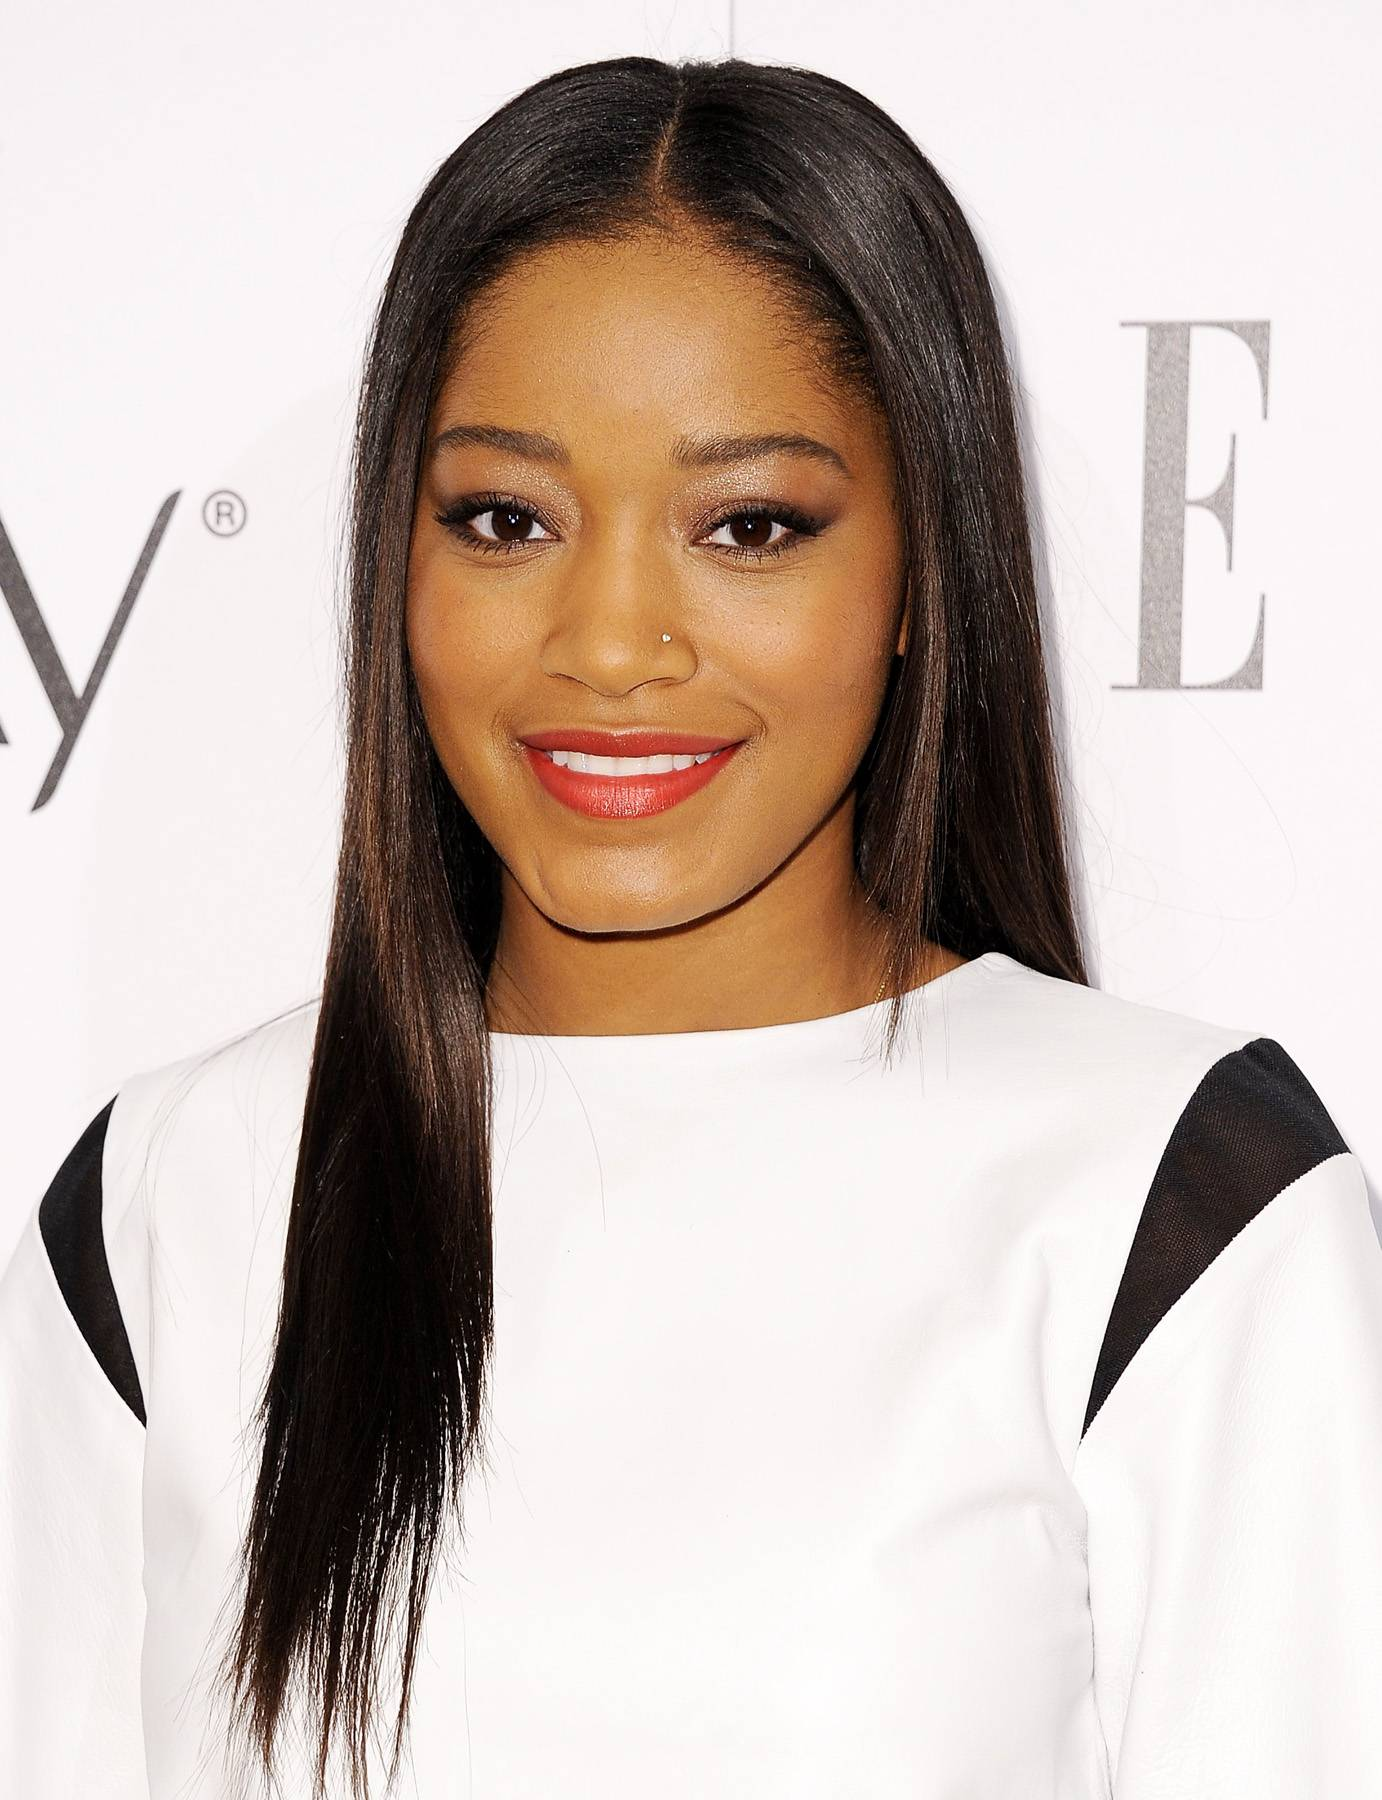 KeKe Palmer - March 5, 2014 - KeKe Palmer's not slowing down anytime soon and she took us on The Trip to Bountiful.Watch a clip now!(Photo by Angela Weiss/Getty Images)